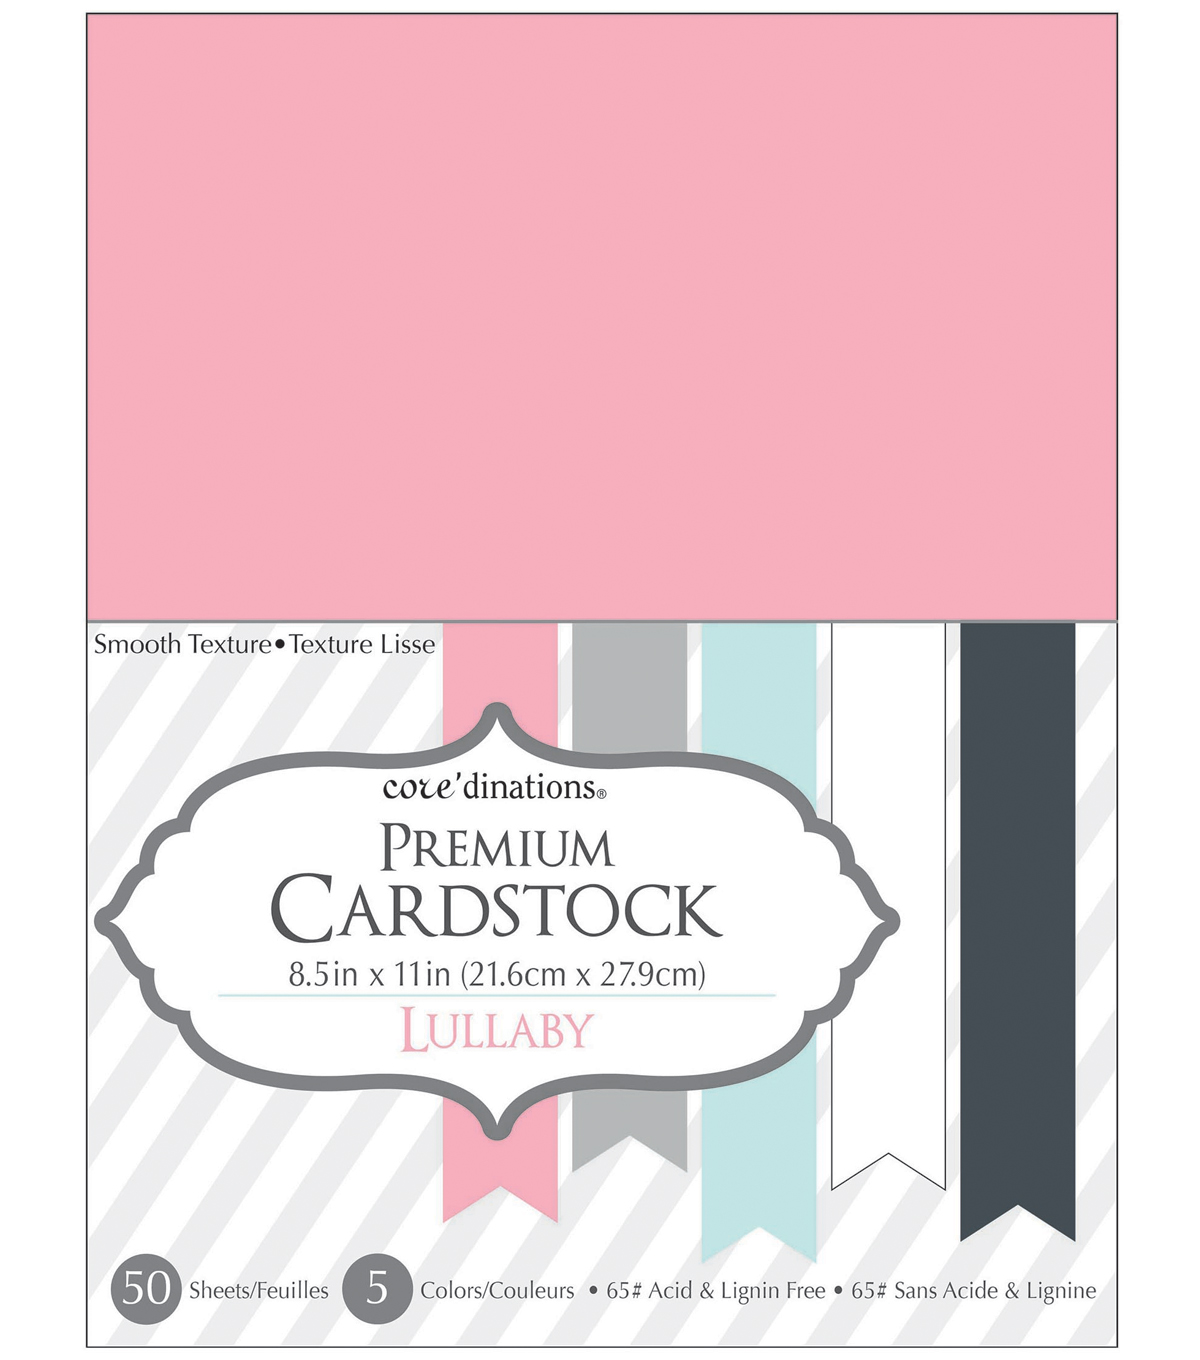 Core\u0027dinations Cardstock Lullaby